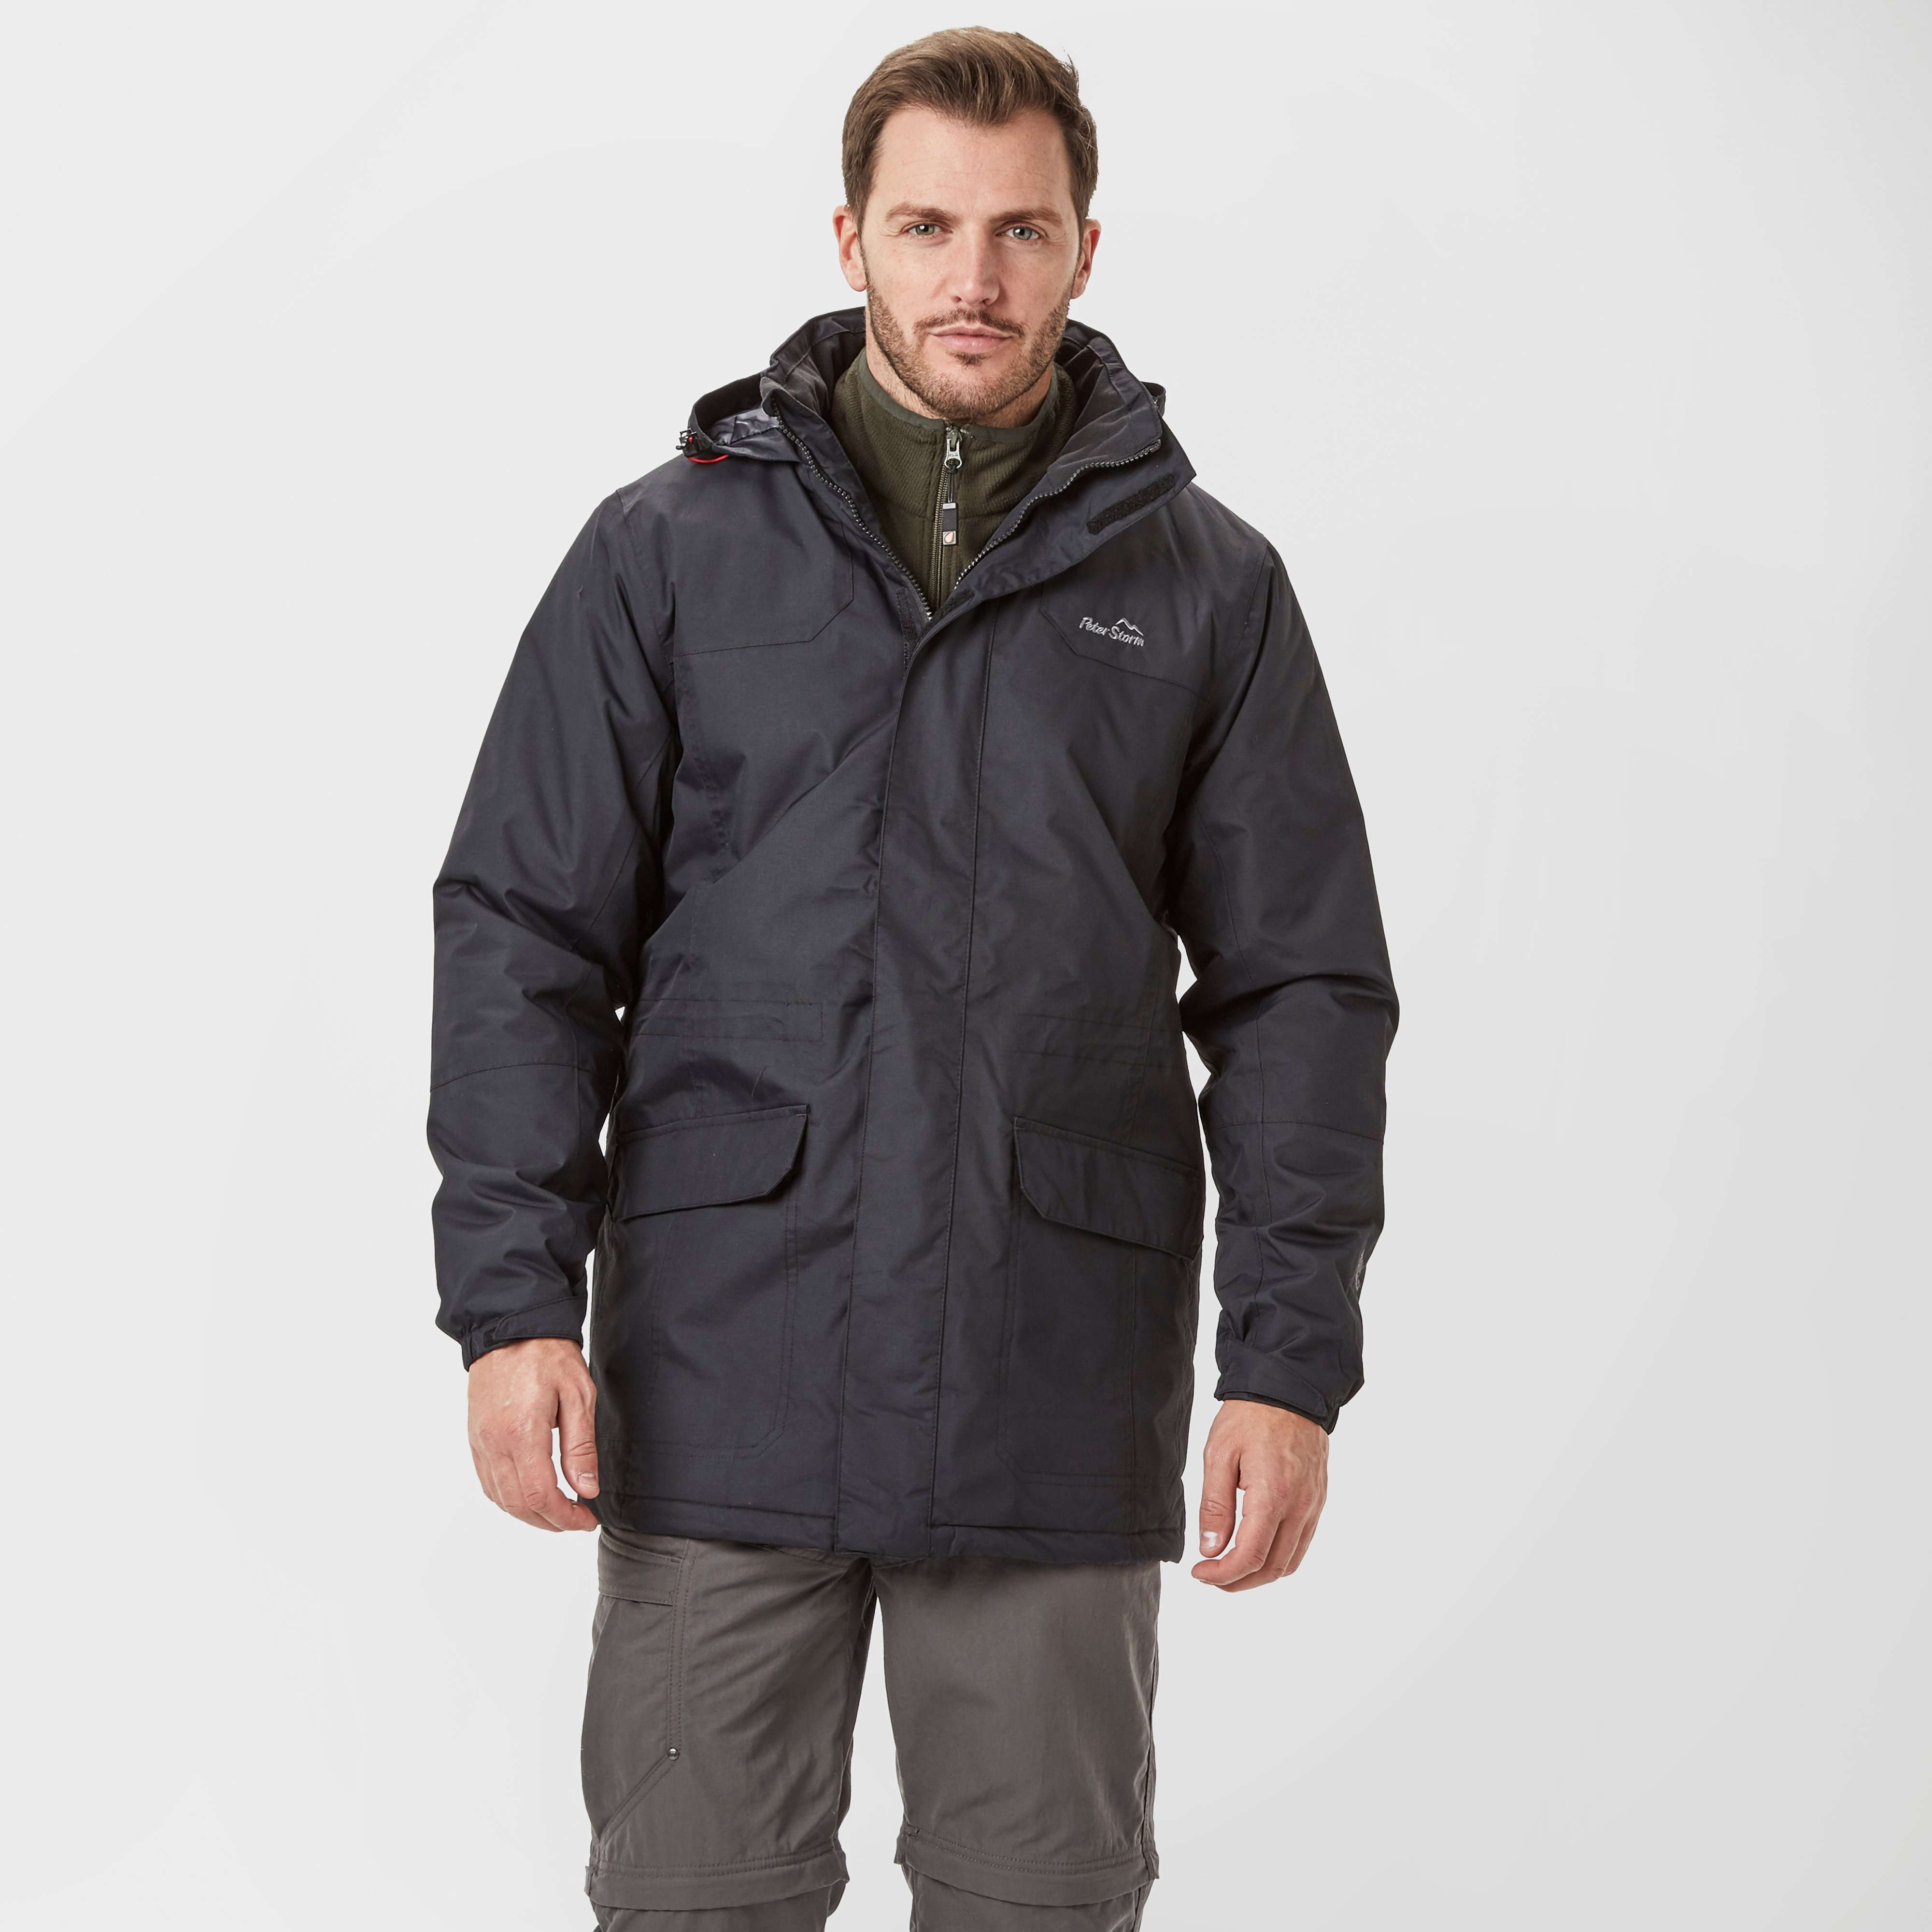 PETER STORM Men's Windstorm Insulated Jacket